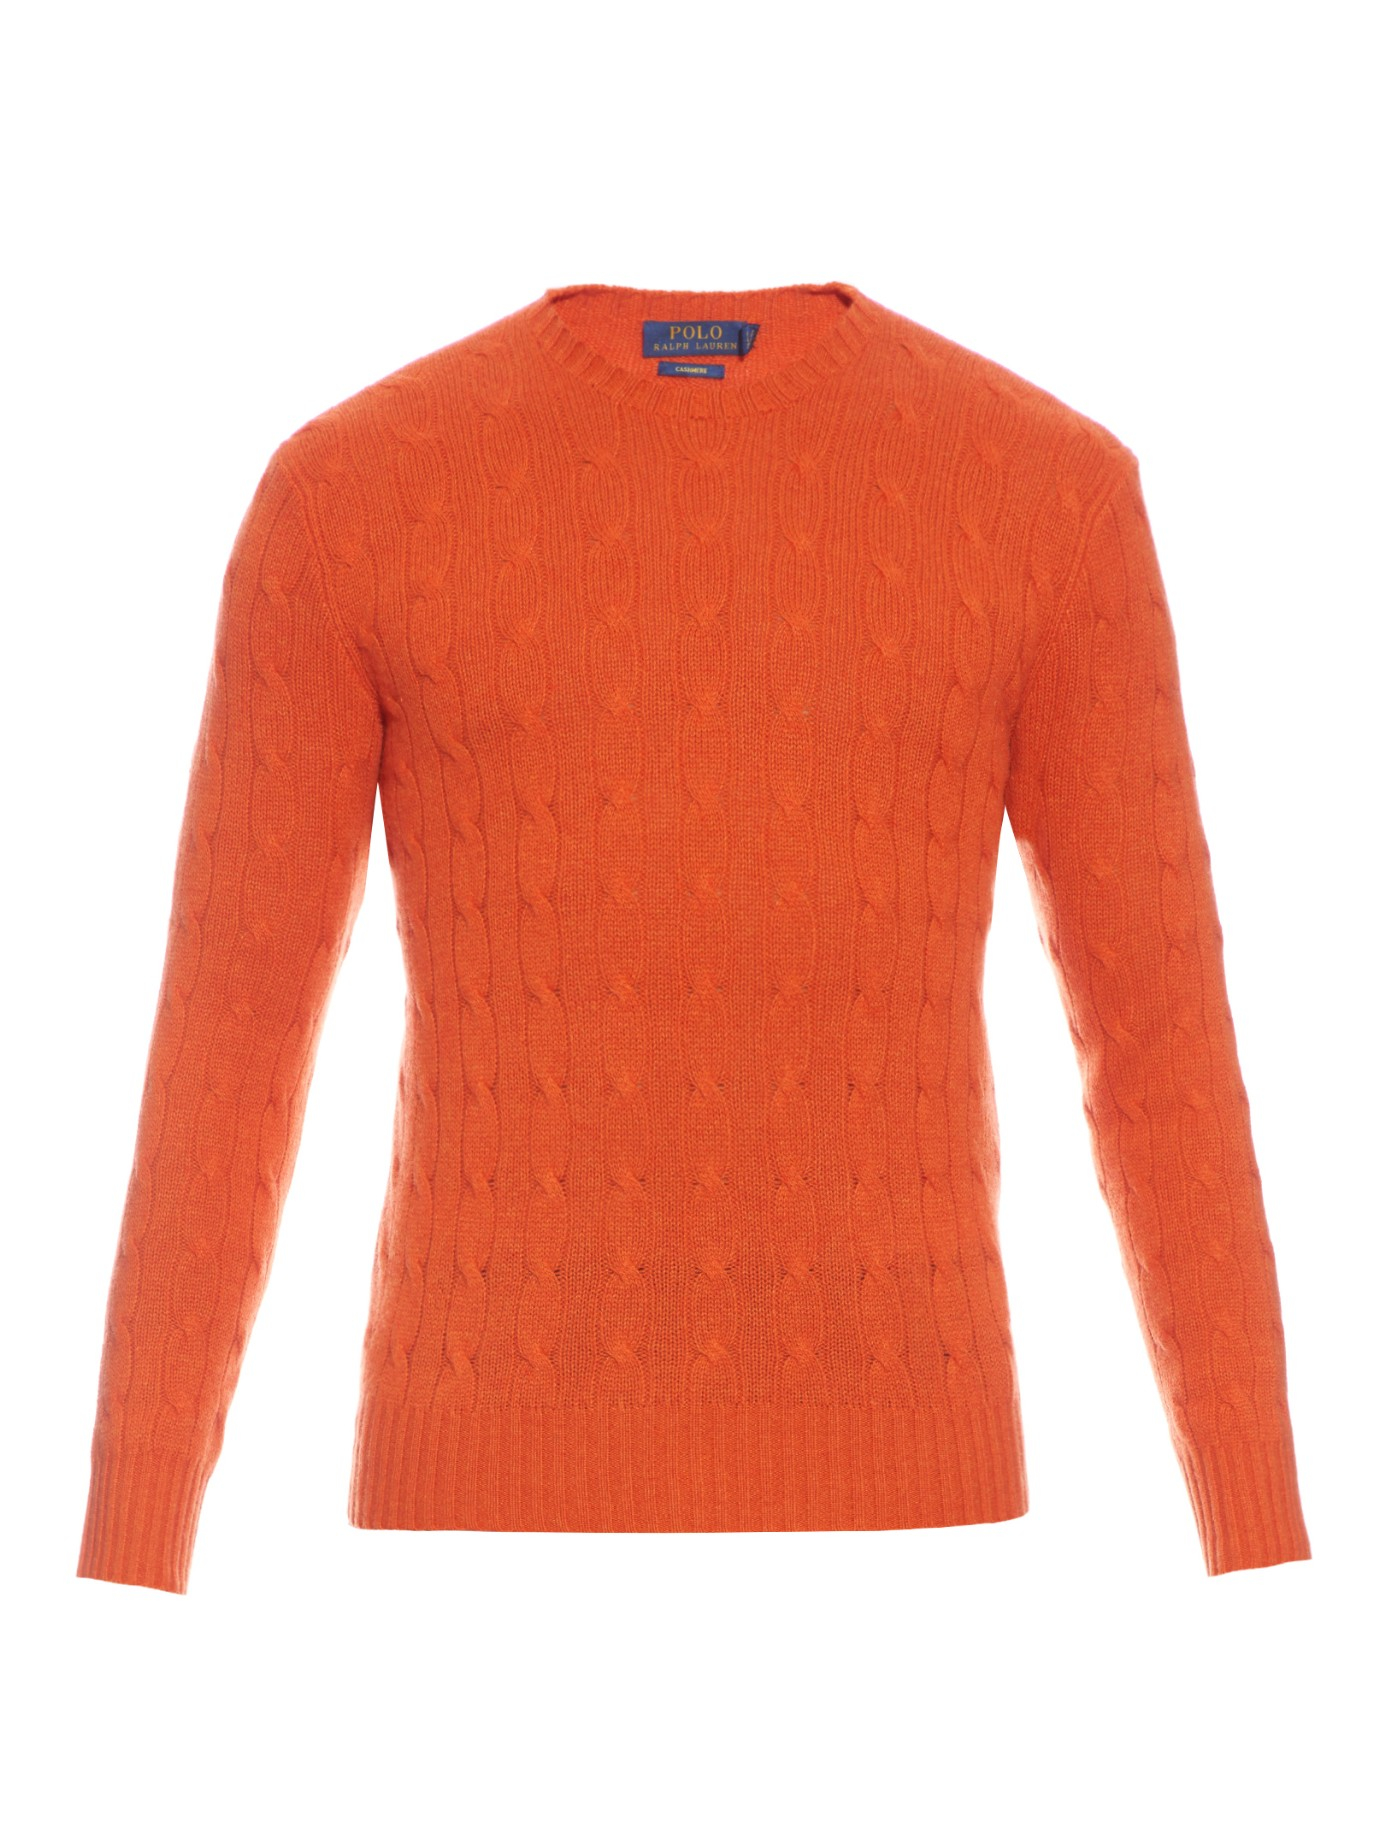 Polo ralph lauren Cable-knit Cashmere Sweater in Orange for Men | Lyst